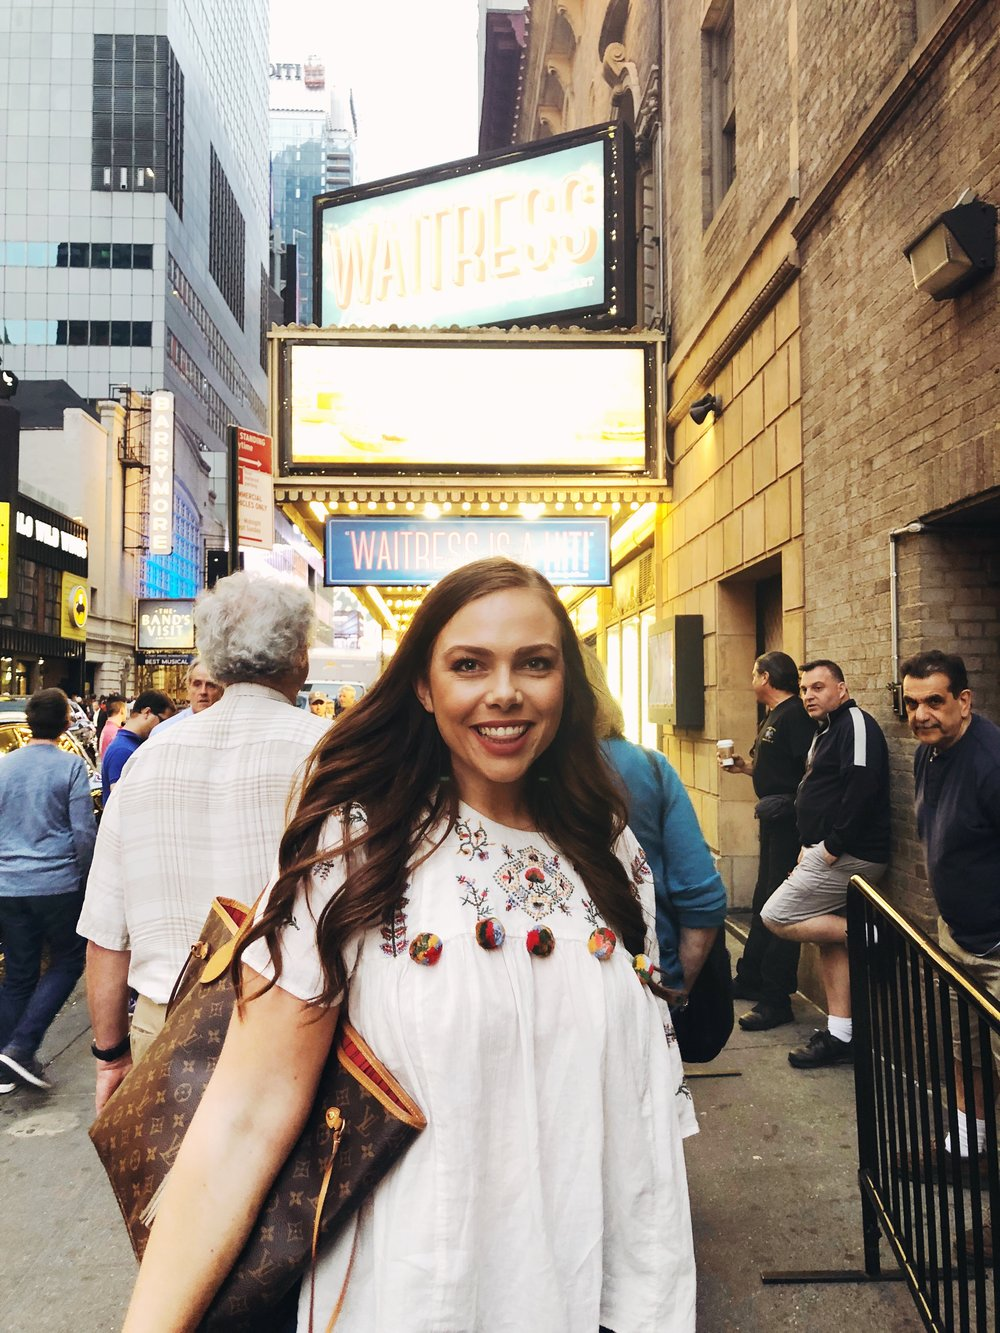 I took a picture in front of each sign of all four musicals we saw in NYC during that long weekend! Waitress was my fave!